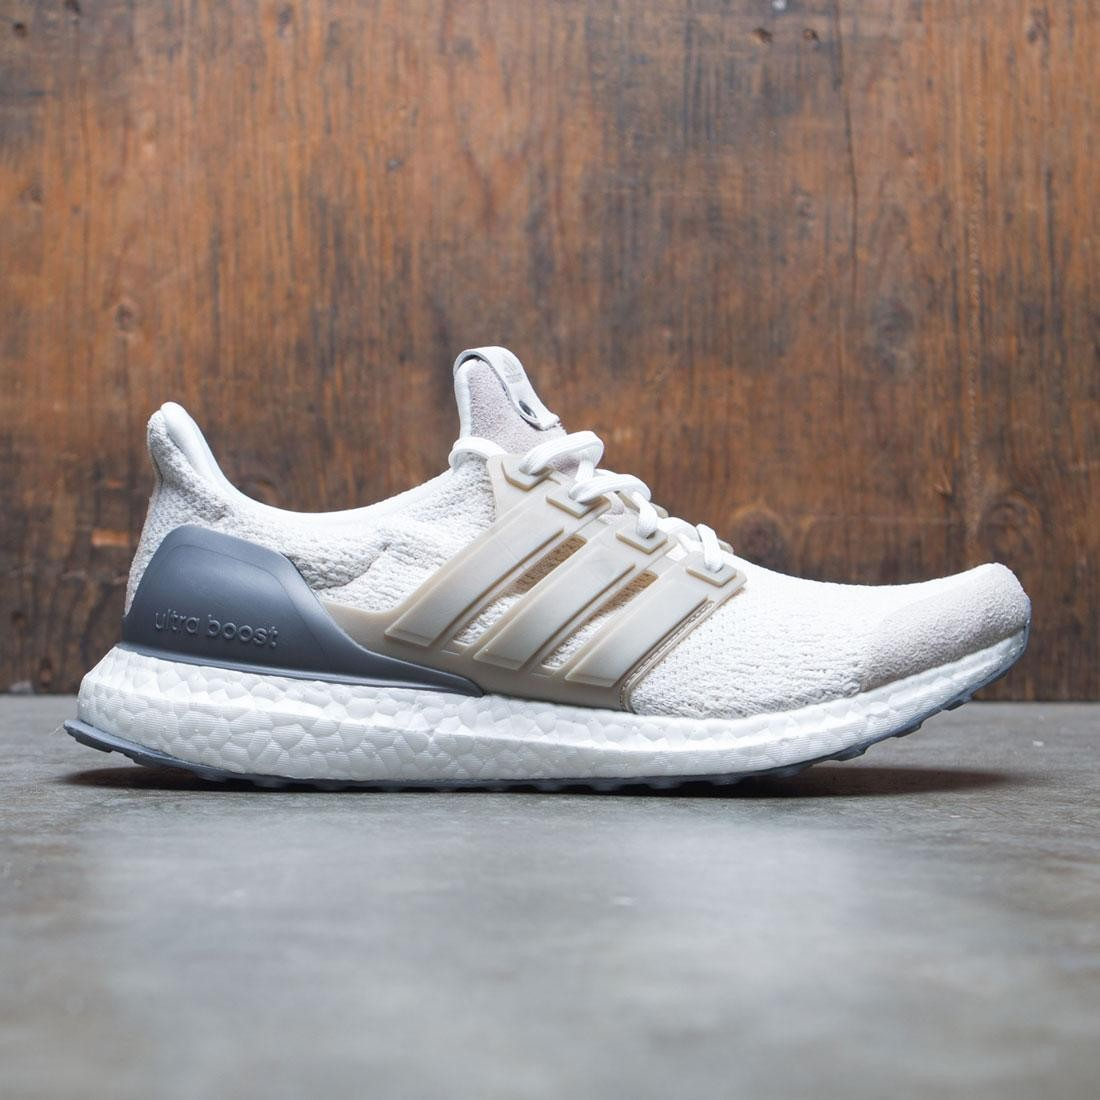 Adidas Consortium Men UltraBOOST Lux white vintage white chocolate brown 2862405fb9ec